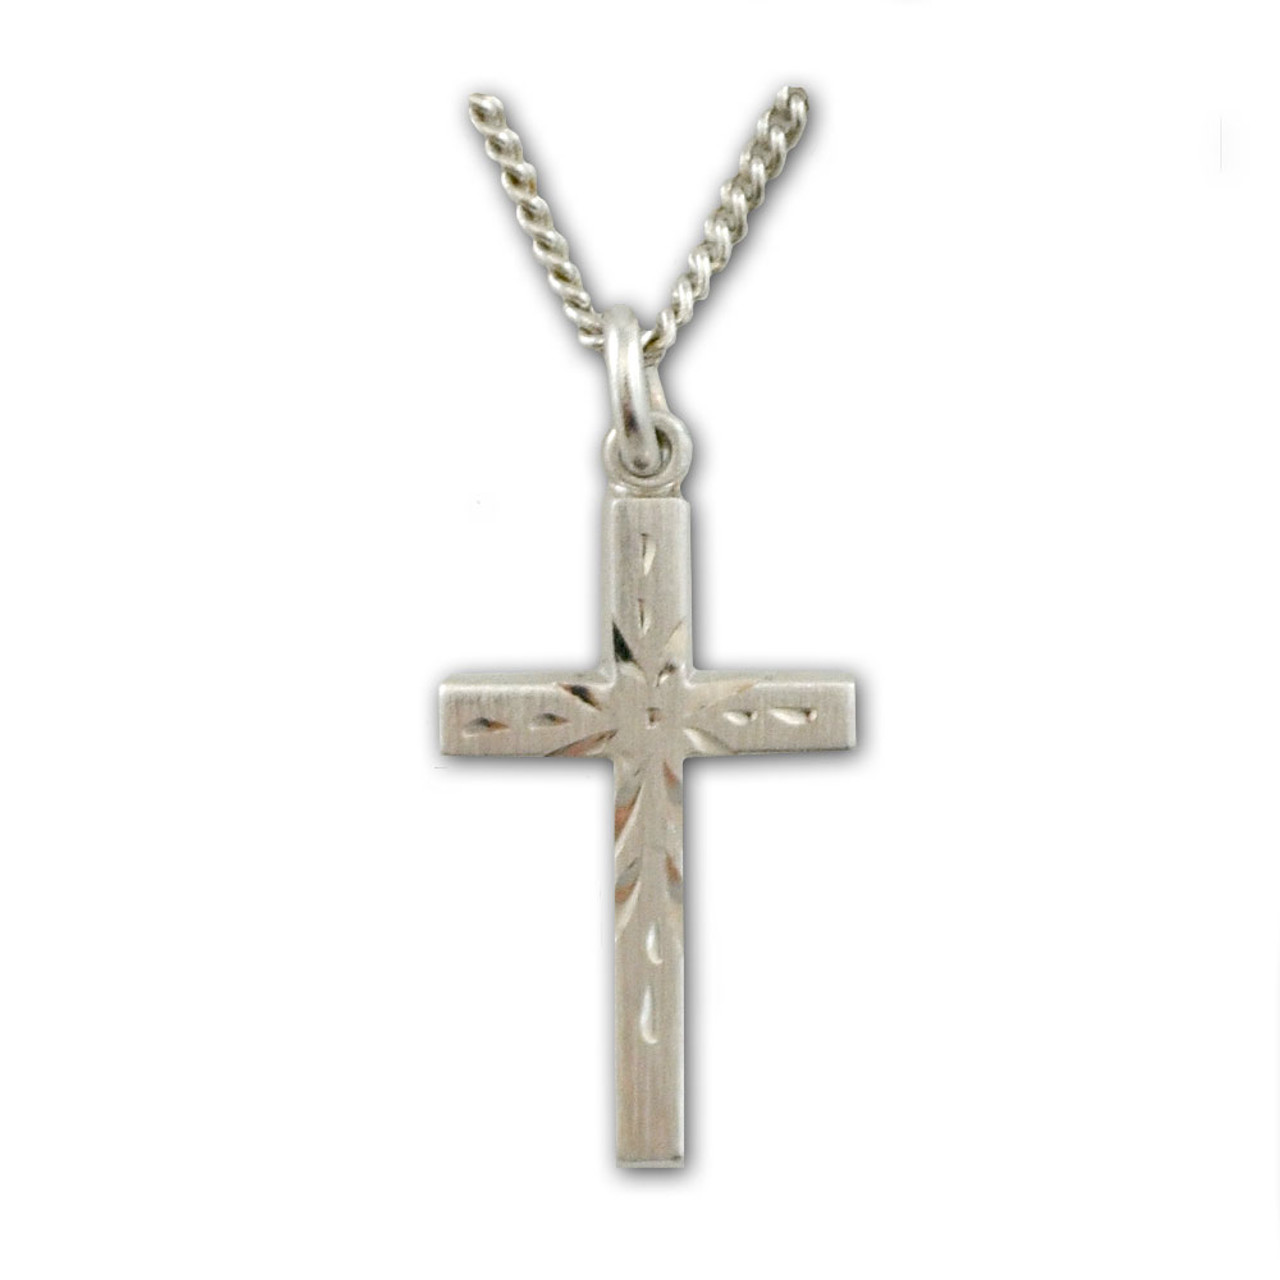 Etched Silver Cross Necklace w/18 IN Chain